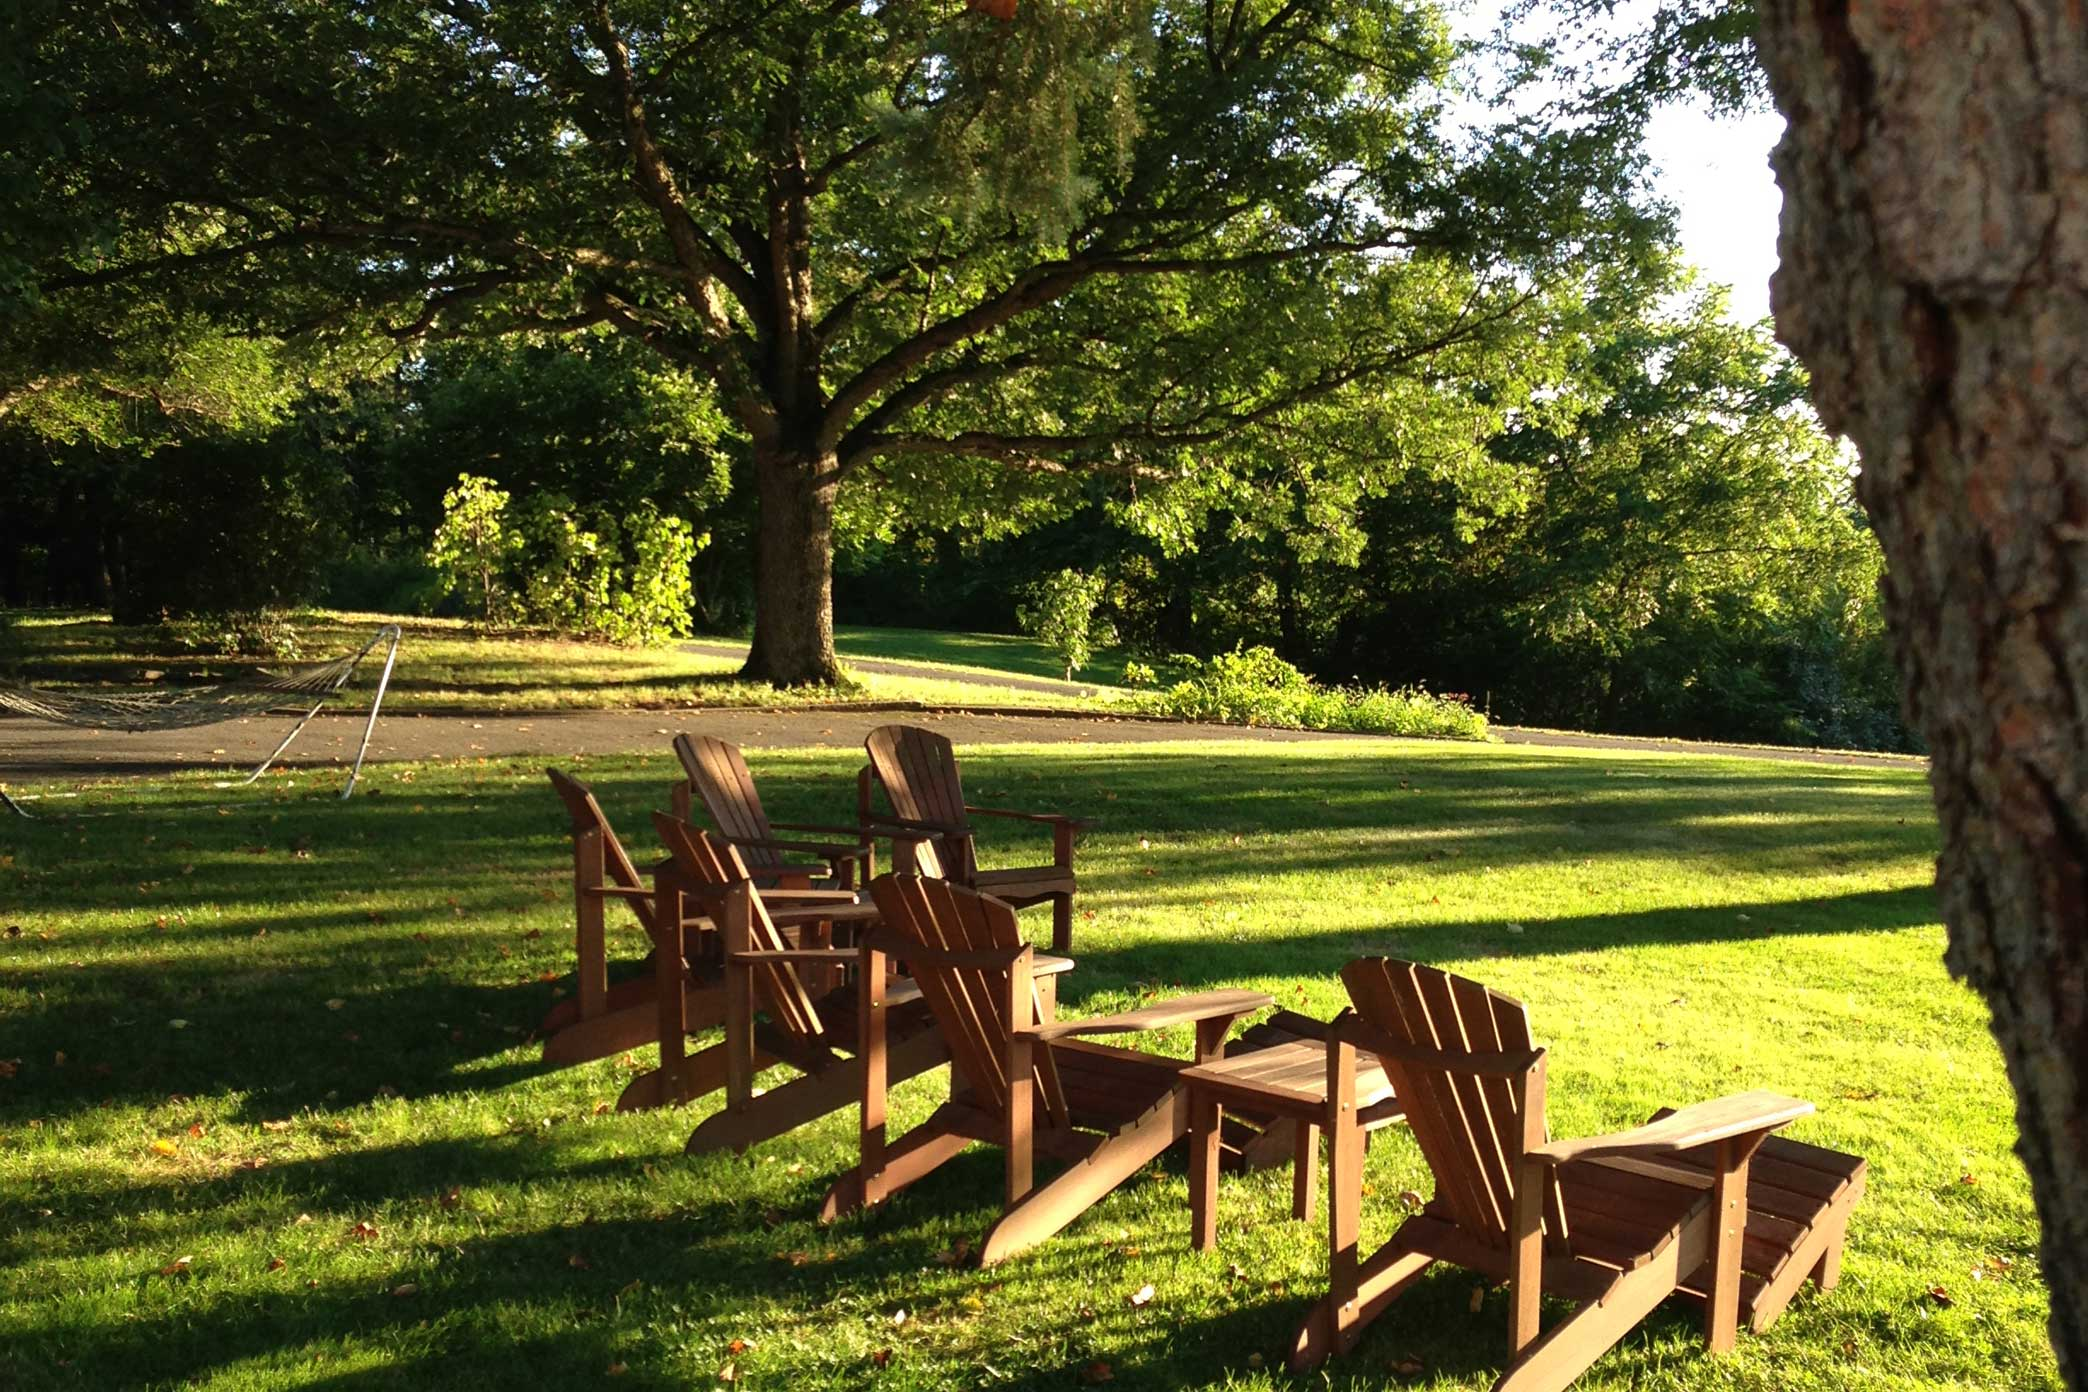 Rated 1 Saugerties Hotel On Tripadvisor 20 Minutes To Woodstock Hudson Kingston And The Northern Catskill High Peaks